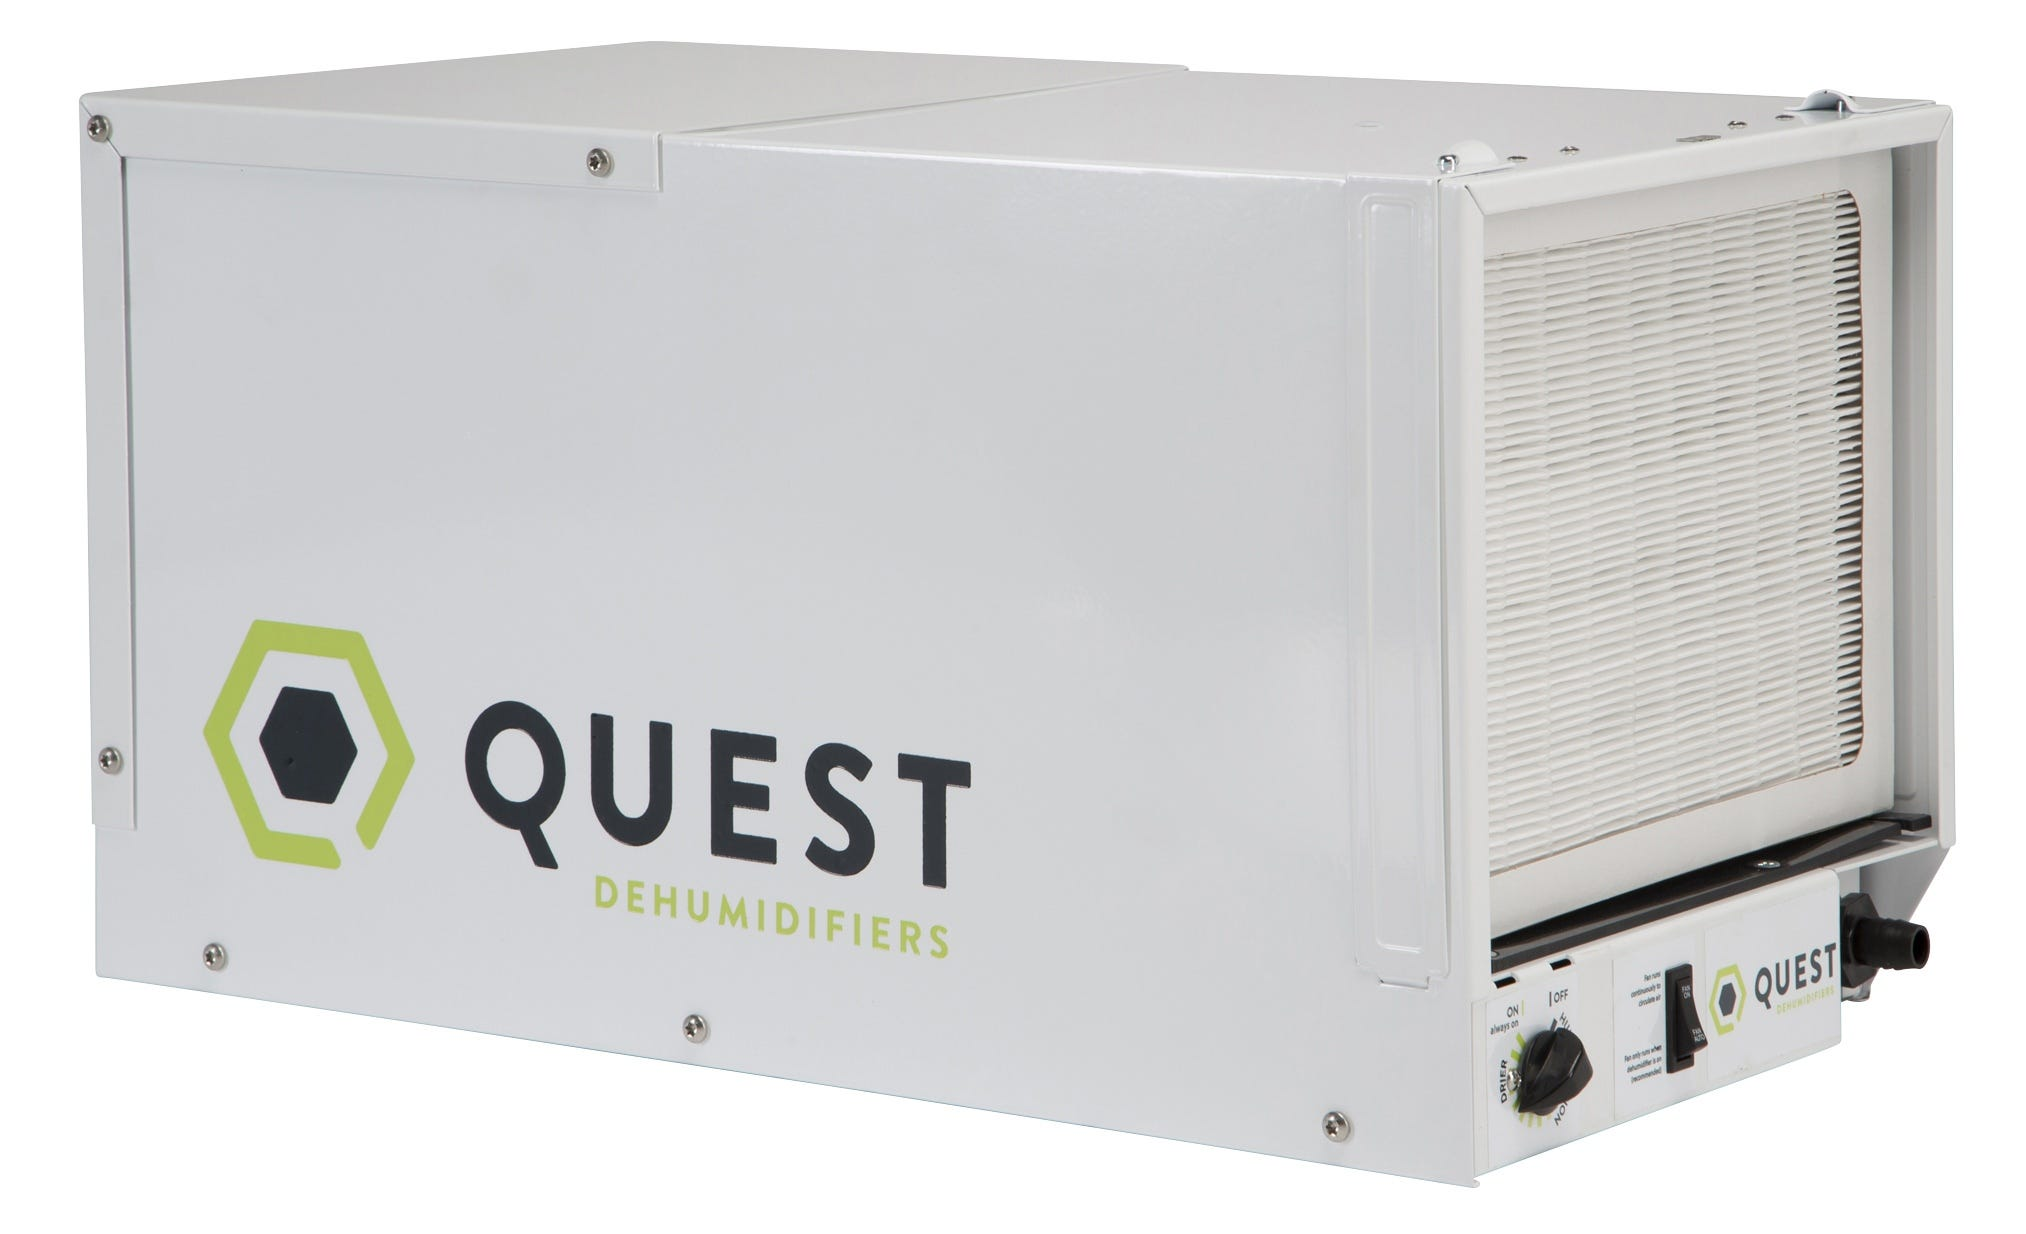 """Quest 70 Pint Dehumidifier Quest 70 Pint Dehumidifier The Quest 70 pint Dehumidifier is versatile. It can be placed overhead and out of the way of your grow operation. It can also be setup and run at ground level for your ease. The Quest 70 pint Dehumidifier was engineered to provide solid performance, improved value over previous models, and excellent energy efficiency. The Quest 70 pint Dehumidifier gives you excellent performance in challenging and constrained grow spaces. This model runs at 115 Volt, 60Hz, and 5.1 Amps. It is highly efficient at 2.37 L/kwh (5.0 Pints/kwh). It can be run between 33° F and 110° F. It is made in the USA and has a one year warranty for parts and labor and a five year warranty for the compressor and refrigerant system. Quest 70 Pint Dehumidifier Specifications: Part Number: 4033750 Blower: 150 CFM @ 0.0  WG Power: 680 Watts @ 80°F and 60% RH Supply Voltage: 110-120 VAC - 1 Phase - 60 Hz Amps: 5.1 Energy Factor: 2.37 L/kWh Operating Range: 33°F - 110°F Minimum Performance @ 80°F and 60% RH: Water Removal: 70 Pints/Day Efficiency: 5.0 Pints/kWh Air Filter: MERV-13, 12"""" x 12"""" x 1"""" Power Cord: 8' - 115 Volt Grounded Plug Drain Connection: 3/4"""" Threaded NPT or 5/8"""" Hose Barb Warranty: 1 year 100% parts and labor 5 year sealed refrigerant system Dimensions: 26.8  X 17.6  X 17.7  FIRST YEAR WARRANTY: Therma-Stor LLC warrants that, for one (1) year after date of original purchase the Quest 70 Dehumidifier will operate free from any defects in materials and workmanship. Therma-Stor LLC's exclusive obligation under this warranty will be to supply, without charge, a replacement for the dehumidifier which is found to be defective within a one (1) year period from date of purchase and which is returned not later than thirty (30) days after said one (1) year period to Therma-Stor LLC, Madison, WI together with proof of purchase of the dehumidifier. SECOND THROUGH FIFTH YEAR WARRANTY: Therma-Stor LLC further warrants that for a period of five (5) y"""